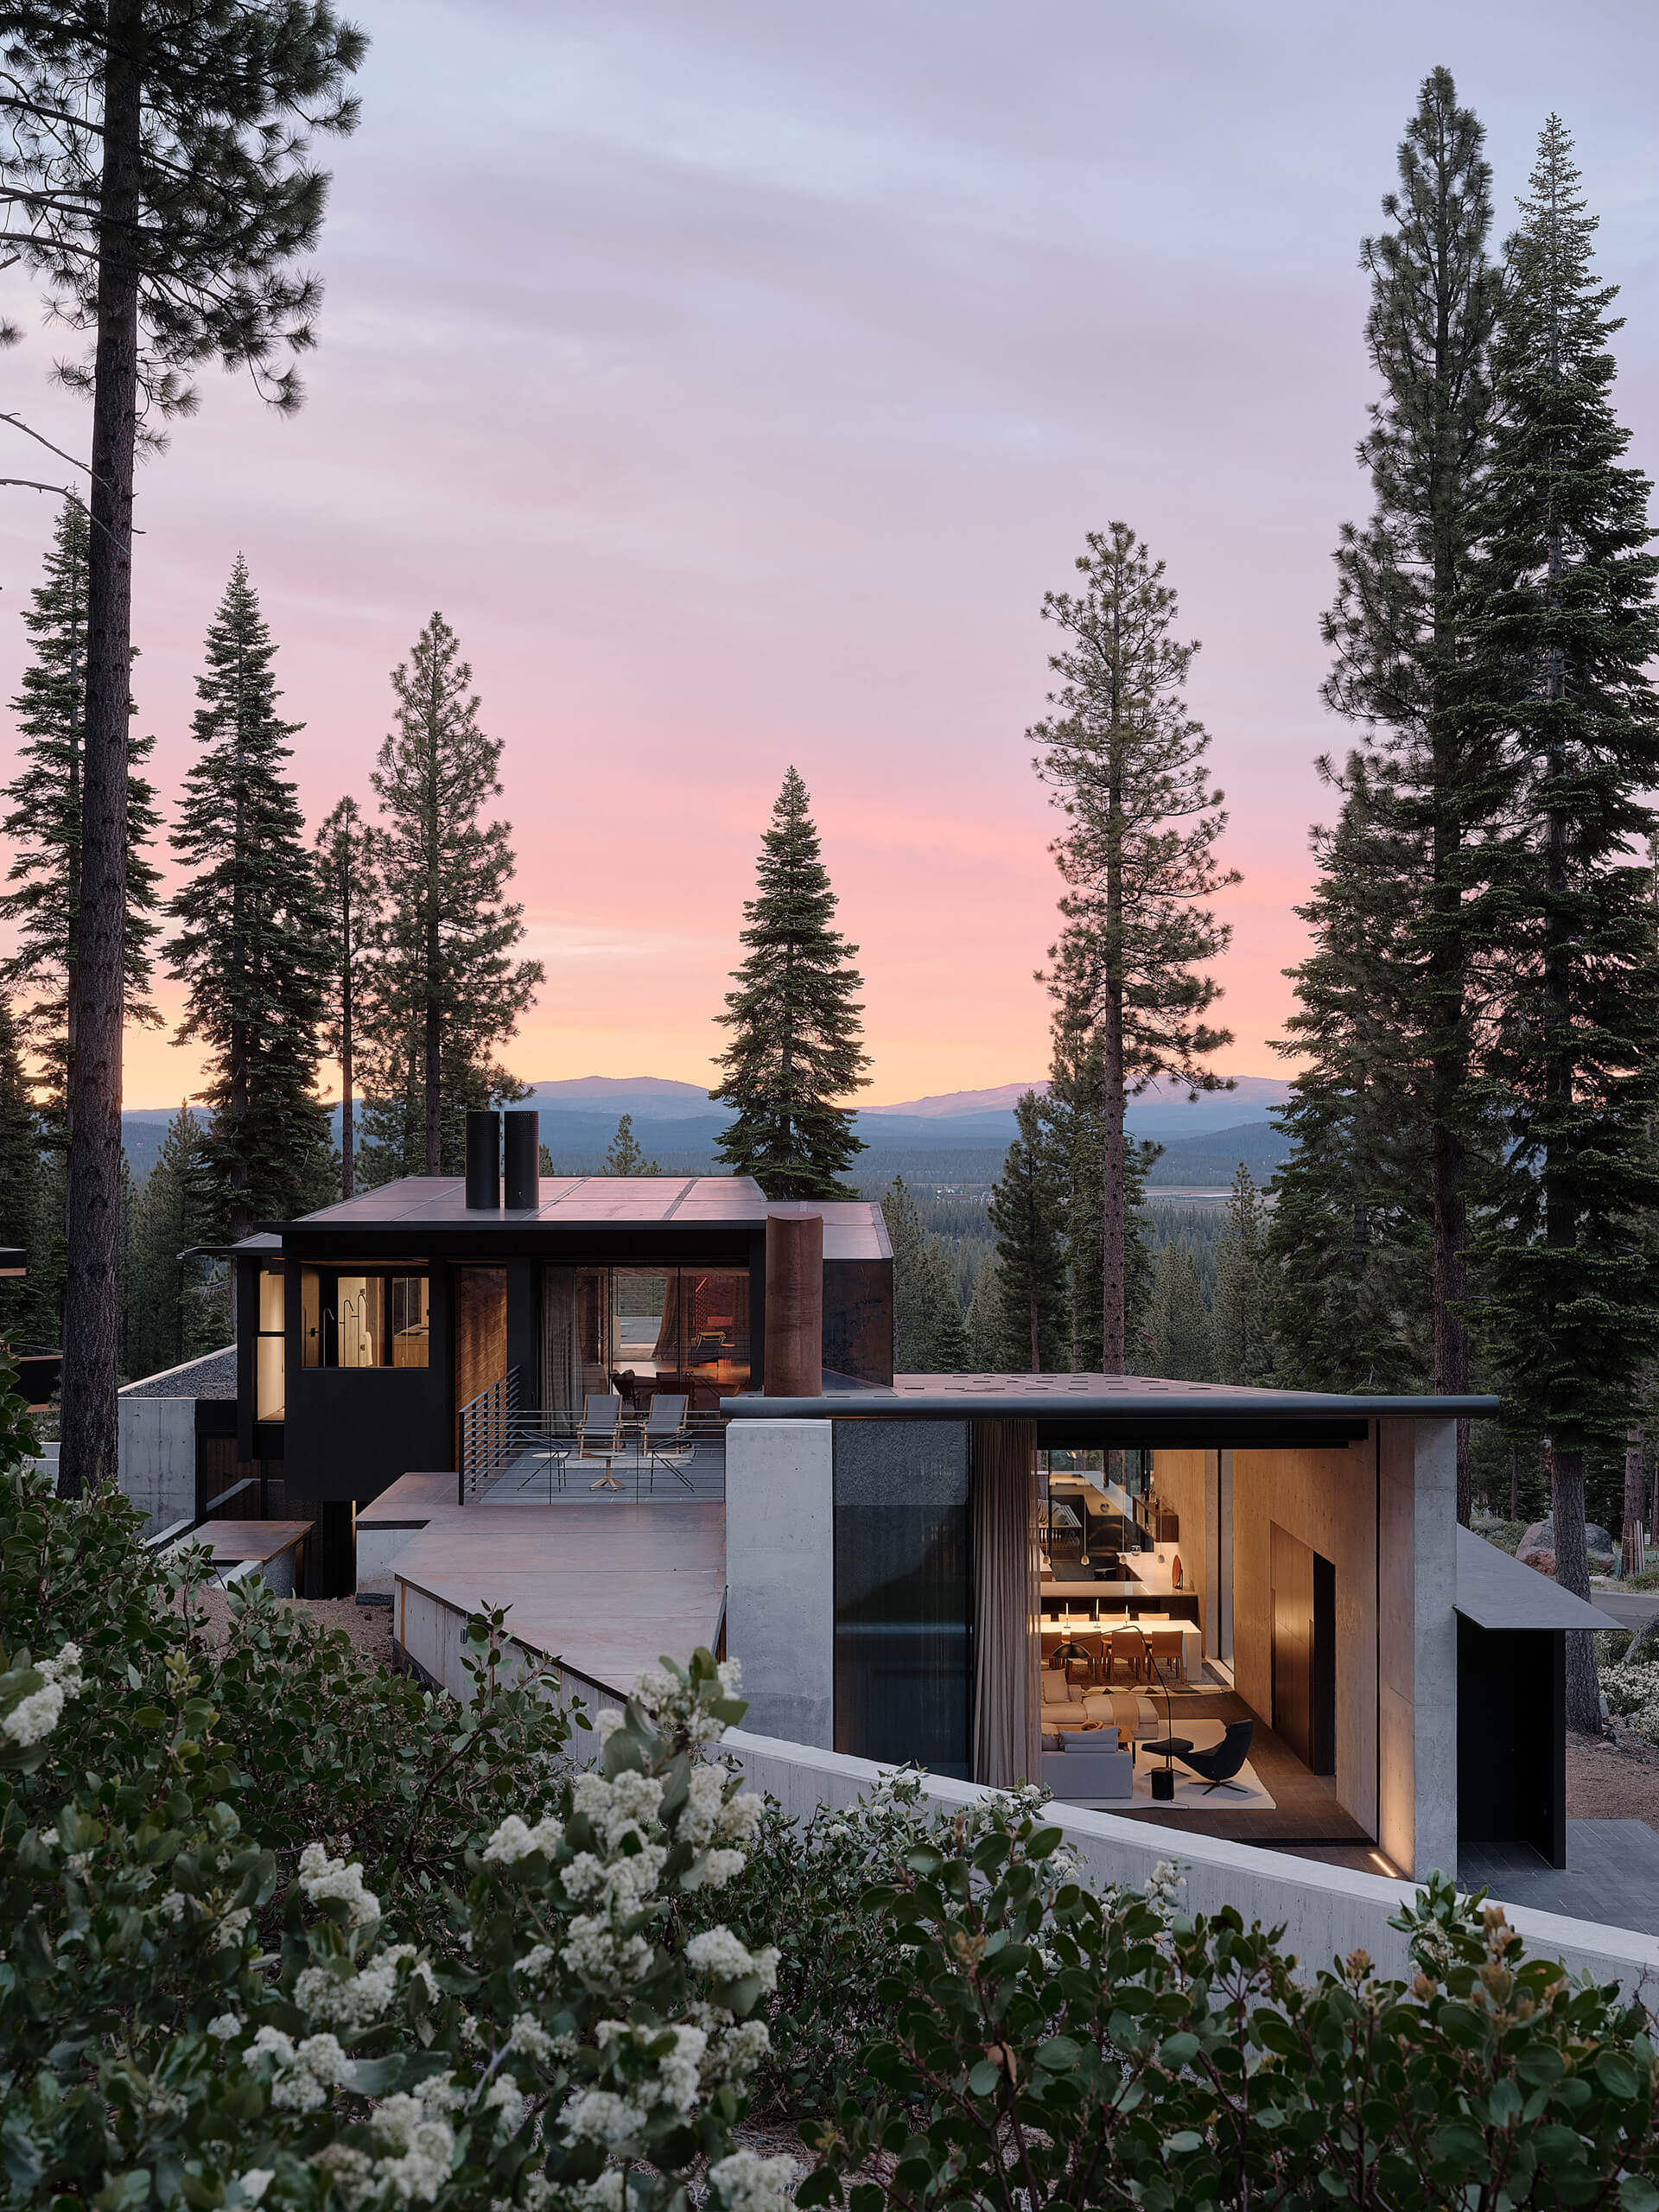 The alpine site's geology influences the design | Lookout House by Faulkner Architects | STIRworld